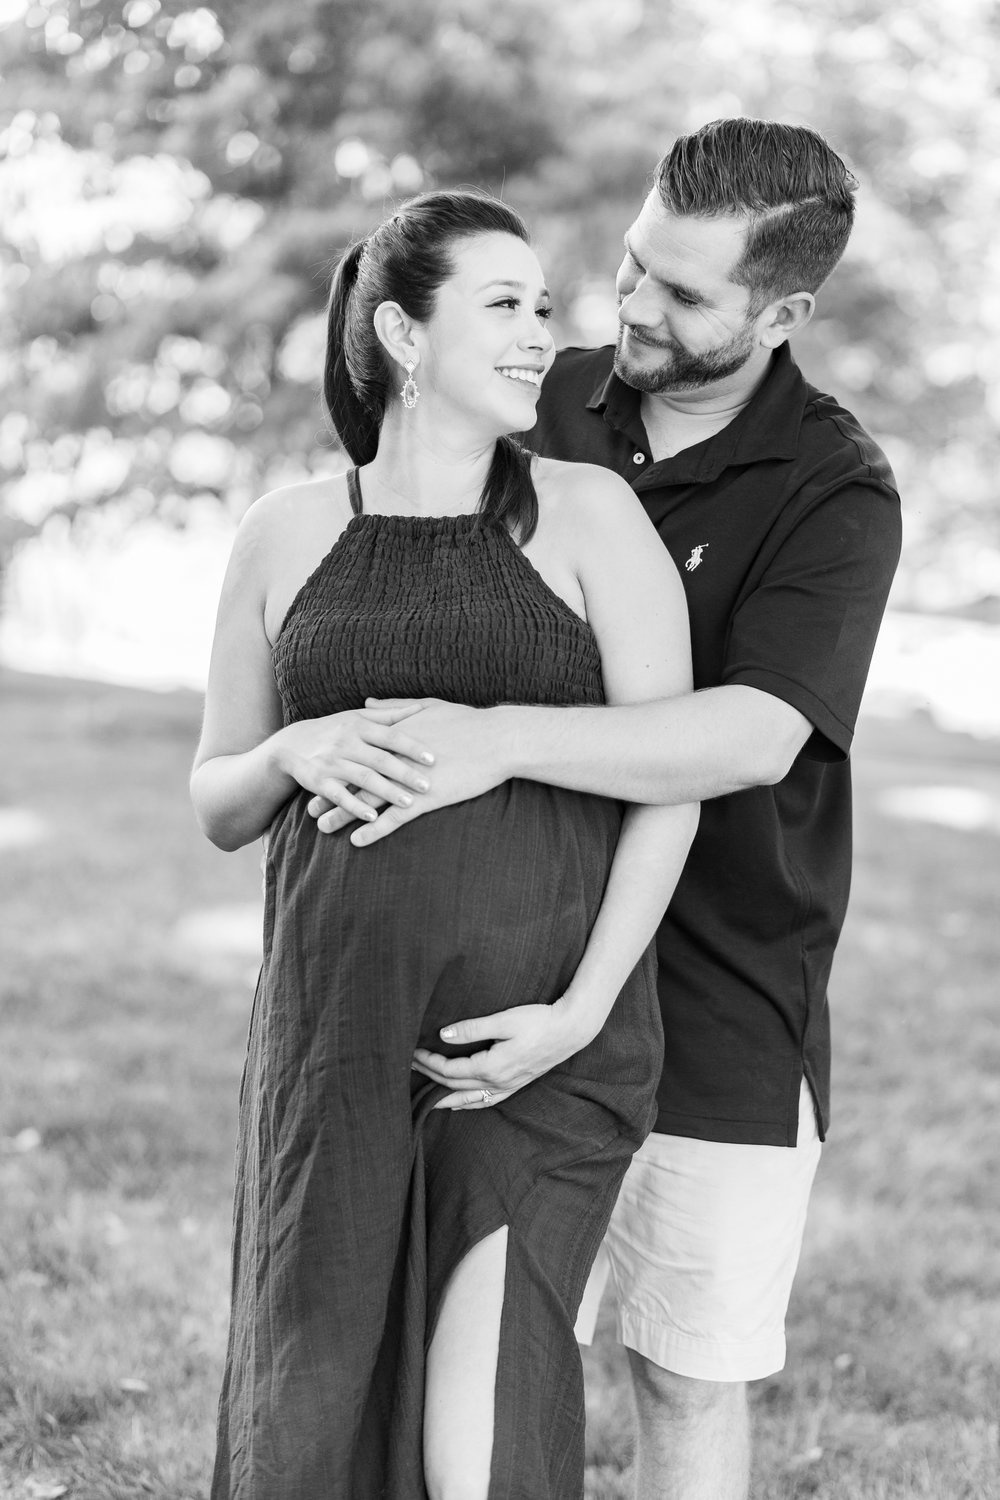 Lehigh Valley Allentown Rose Garden Maternity Photography Session Lytle Photo Co (34 of 66).jpg